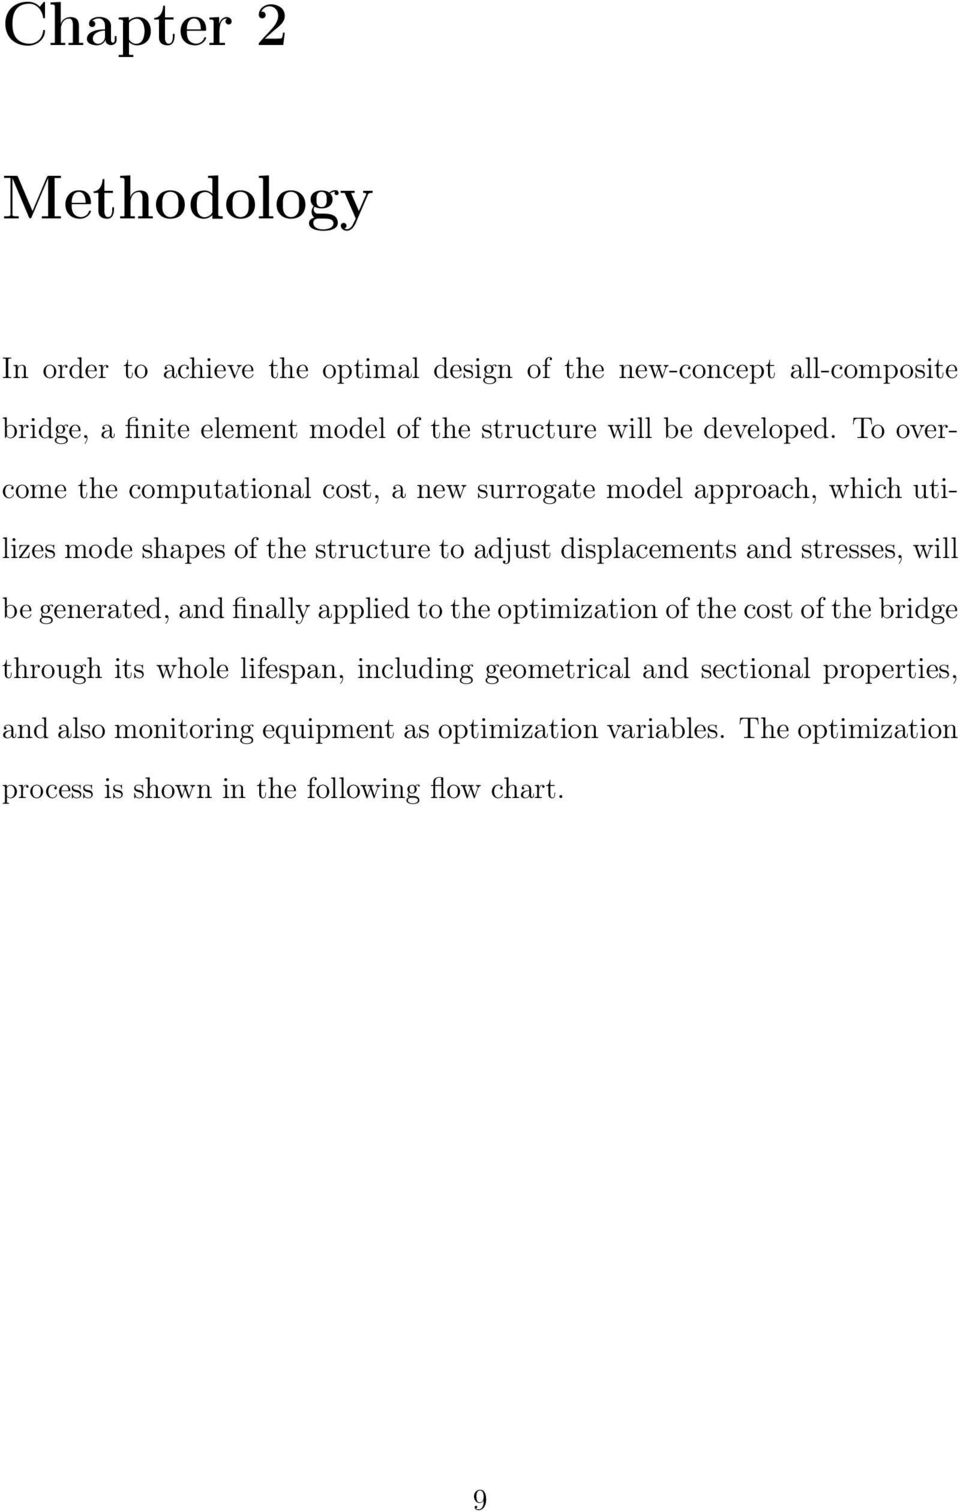 To overcome the computational cost, a new surrogate model approach, which utilizes mode shapes of the structure to adjust displacements and